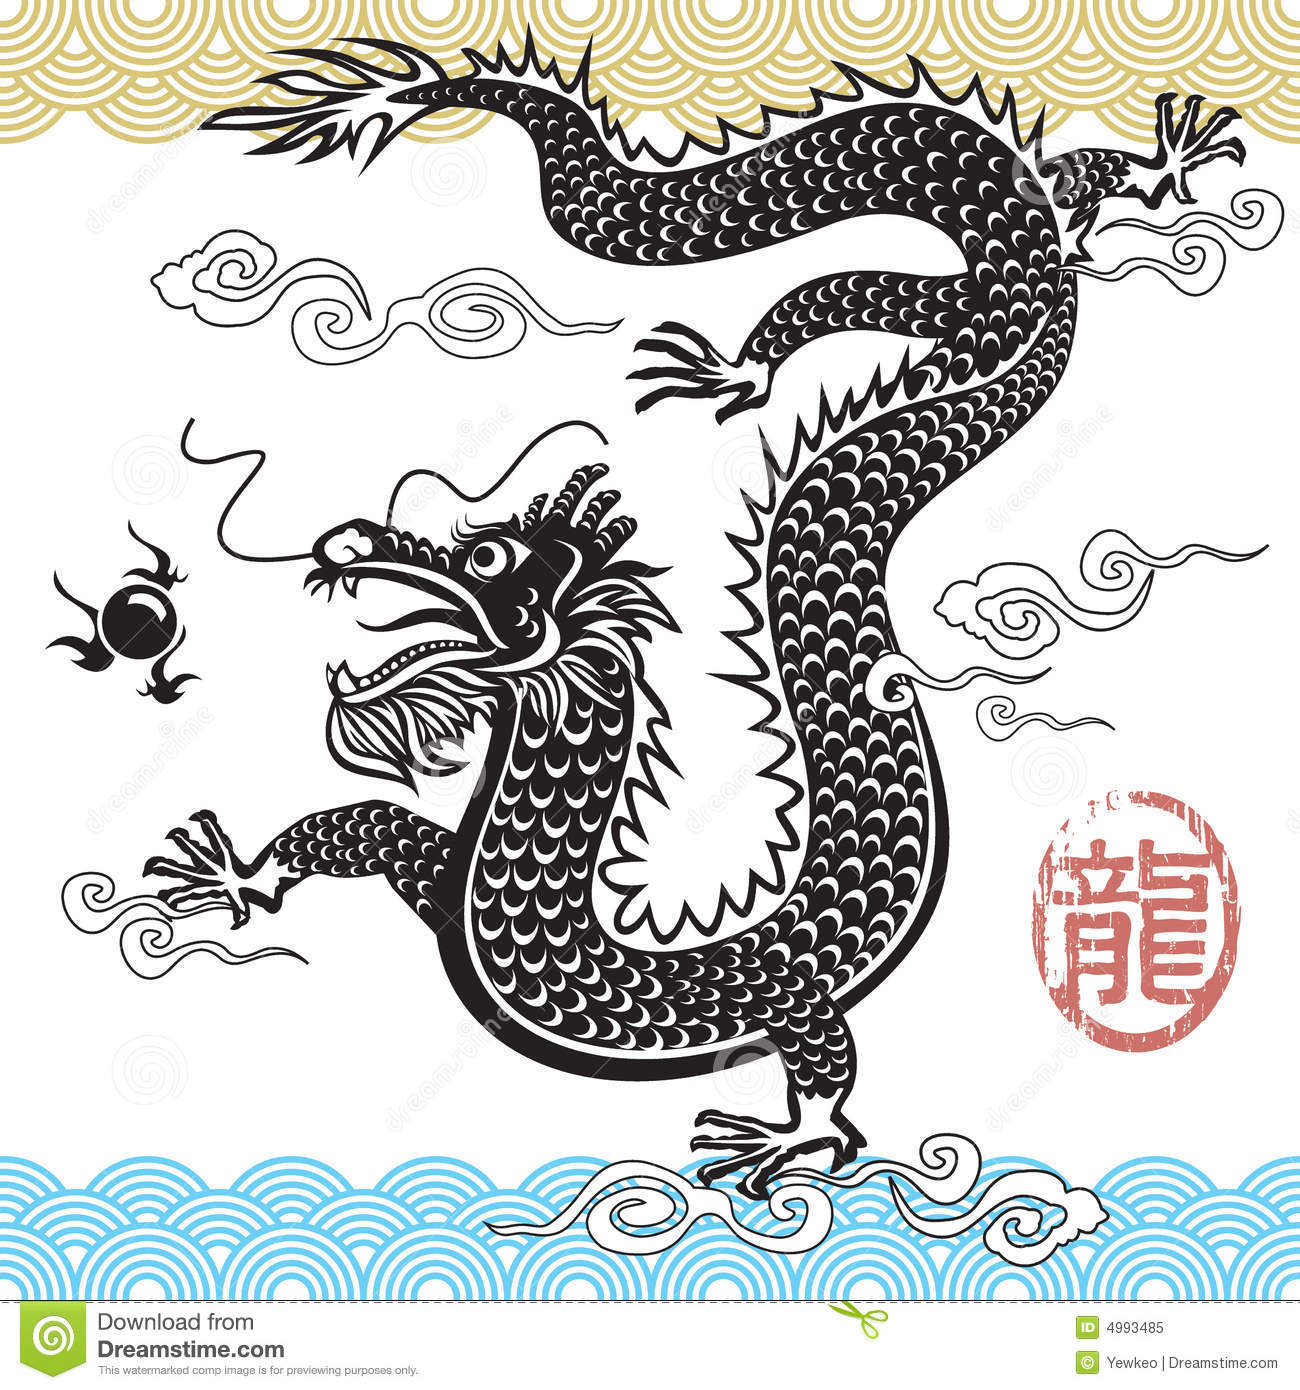 Chinese Traditional Dragon Royalty Free Stock Photo - Image: 4993485